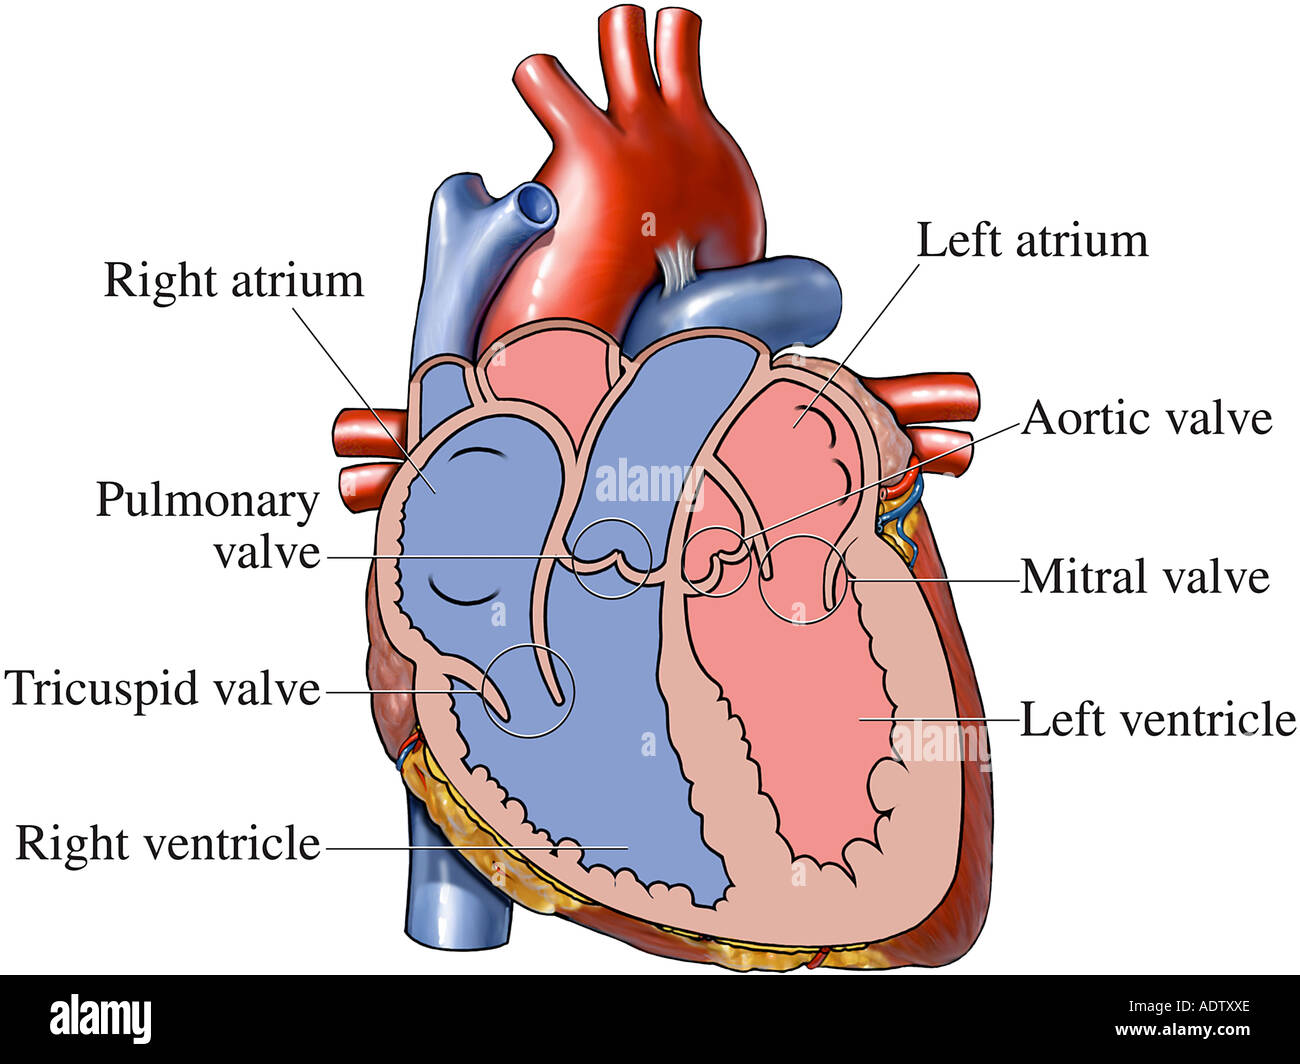 Valves and Chambers of the Heart - Stock Image